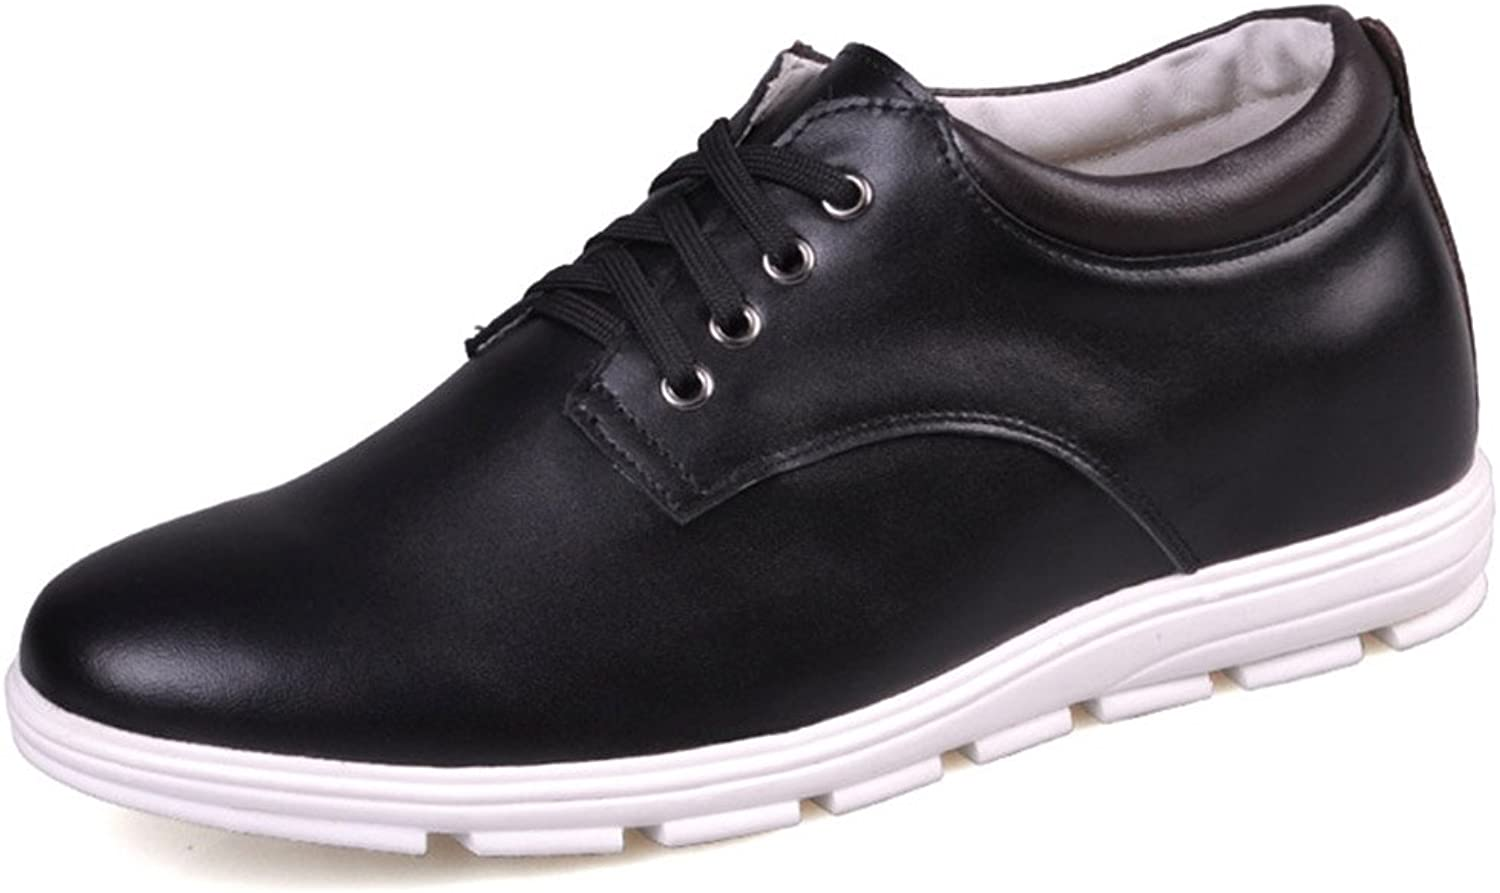 Men's Invisible Elevator shoes Business Casual Leather Oxfords shoes Taller 1.96 inches